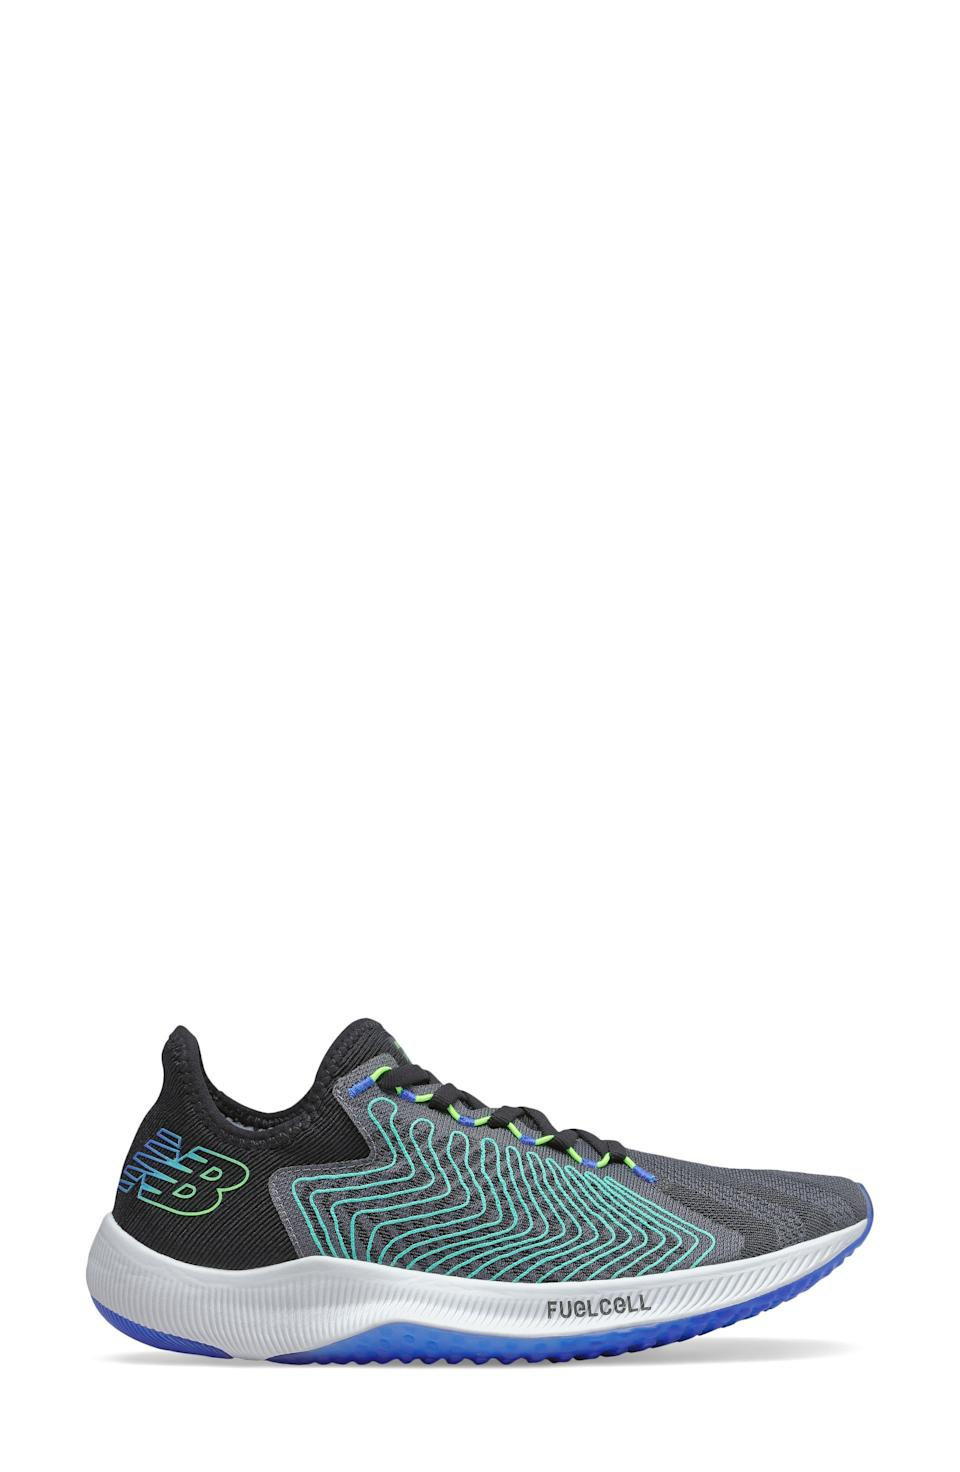 """<p><strong>NEW BALANCE</strong></p><p>nordstrom.com</p><p><a href=""""https://go.redirectingat.com?id=74968X1596630&url=https%3A%2F%2Fwww.nordstrom.com%2Fs%2Fnew-balance-fuelcell-rebel-running-shoe-men%2F5955973&sref=https%3A%2F%2Fwww.menshealth.com%2Fstyle%2Fg37081969%2Fnordstroms-anniversary-sale-best-sneakers%2F"""" rel=""""nofollow noopener"""" target=""""_blank"""" data-ylk=""""slk:BUY IT HERE"""" class=""""link rapid-noclick-resp"""">BUY IT HERE</a></p><p><del>$130<br></del><strong>$84.90</strong></p><p>Ready to <em>literally </em>go the extra mile? Between the lightweight construction and propulsive, nitrogen-infused FuelCell foam soles, New Balance's FuelCell Rebel sneakers will have you do just that. </p>"""